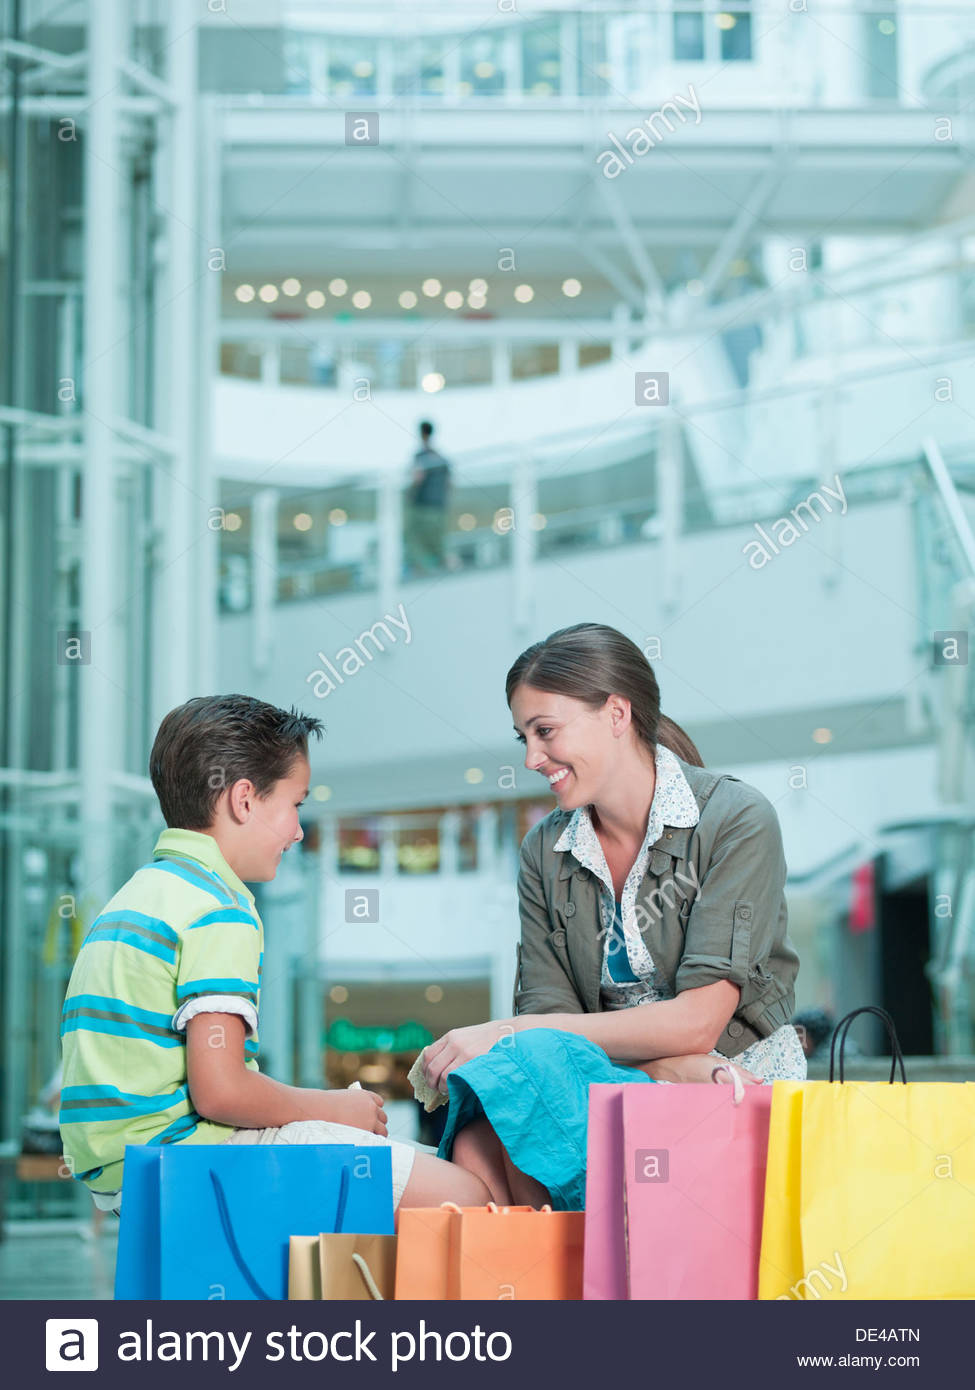 Mother and son with shopping bags in mall - Stock Image